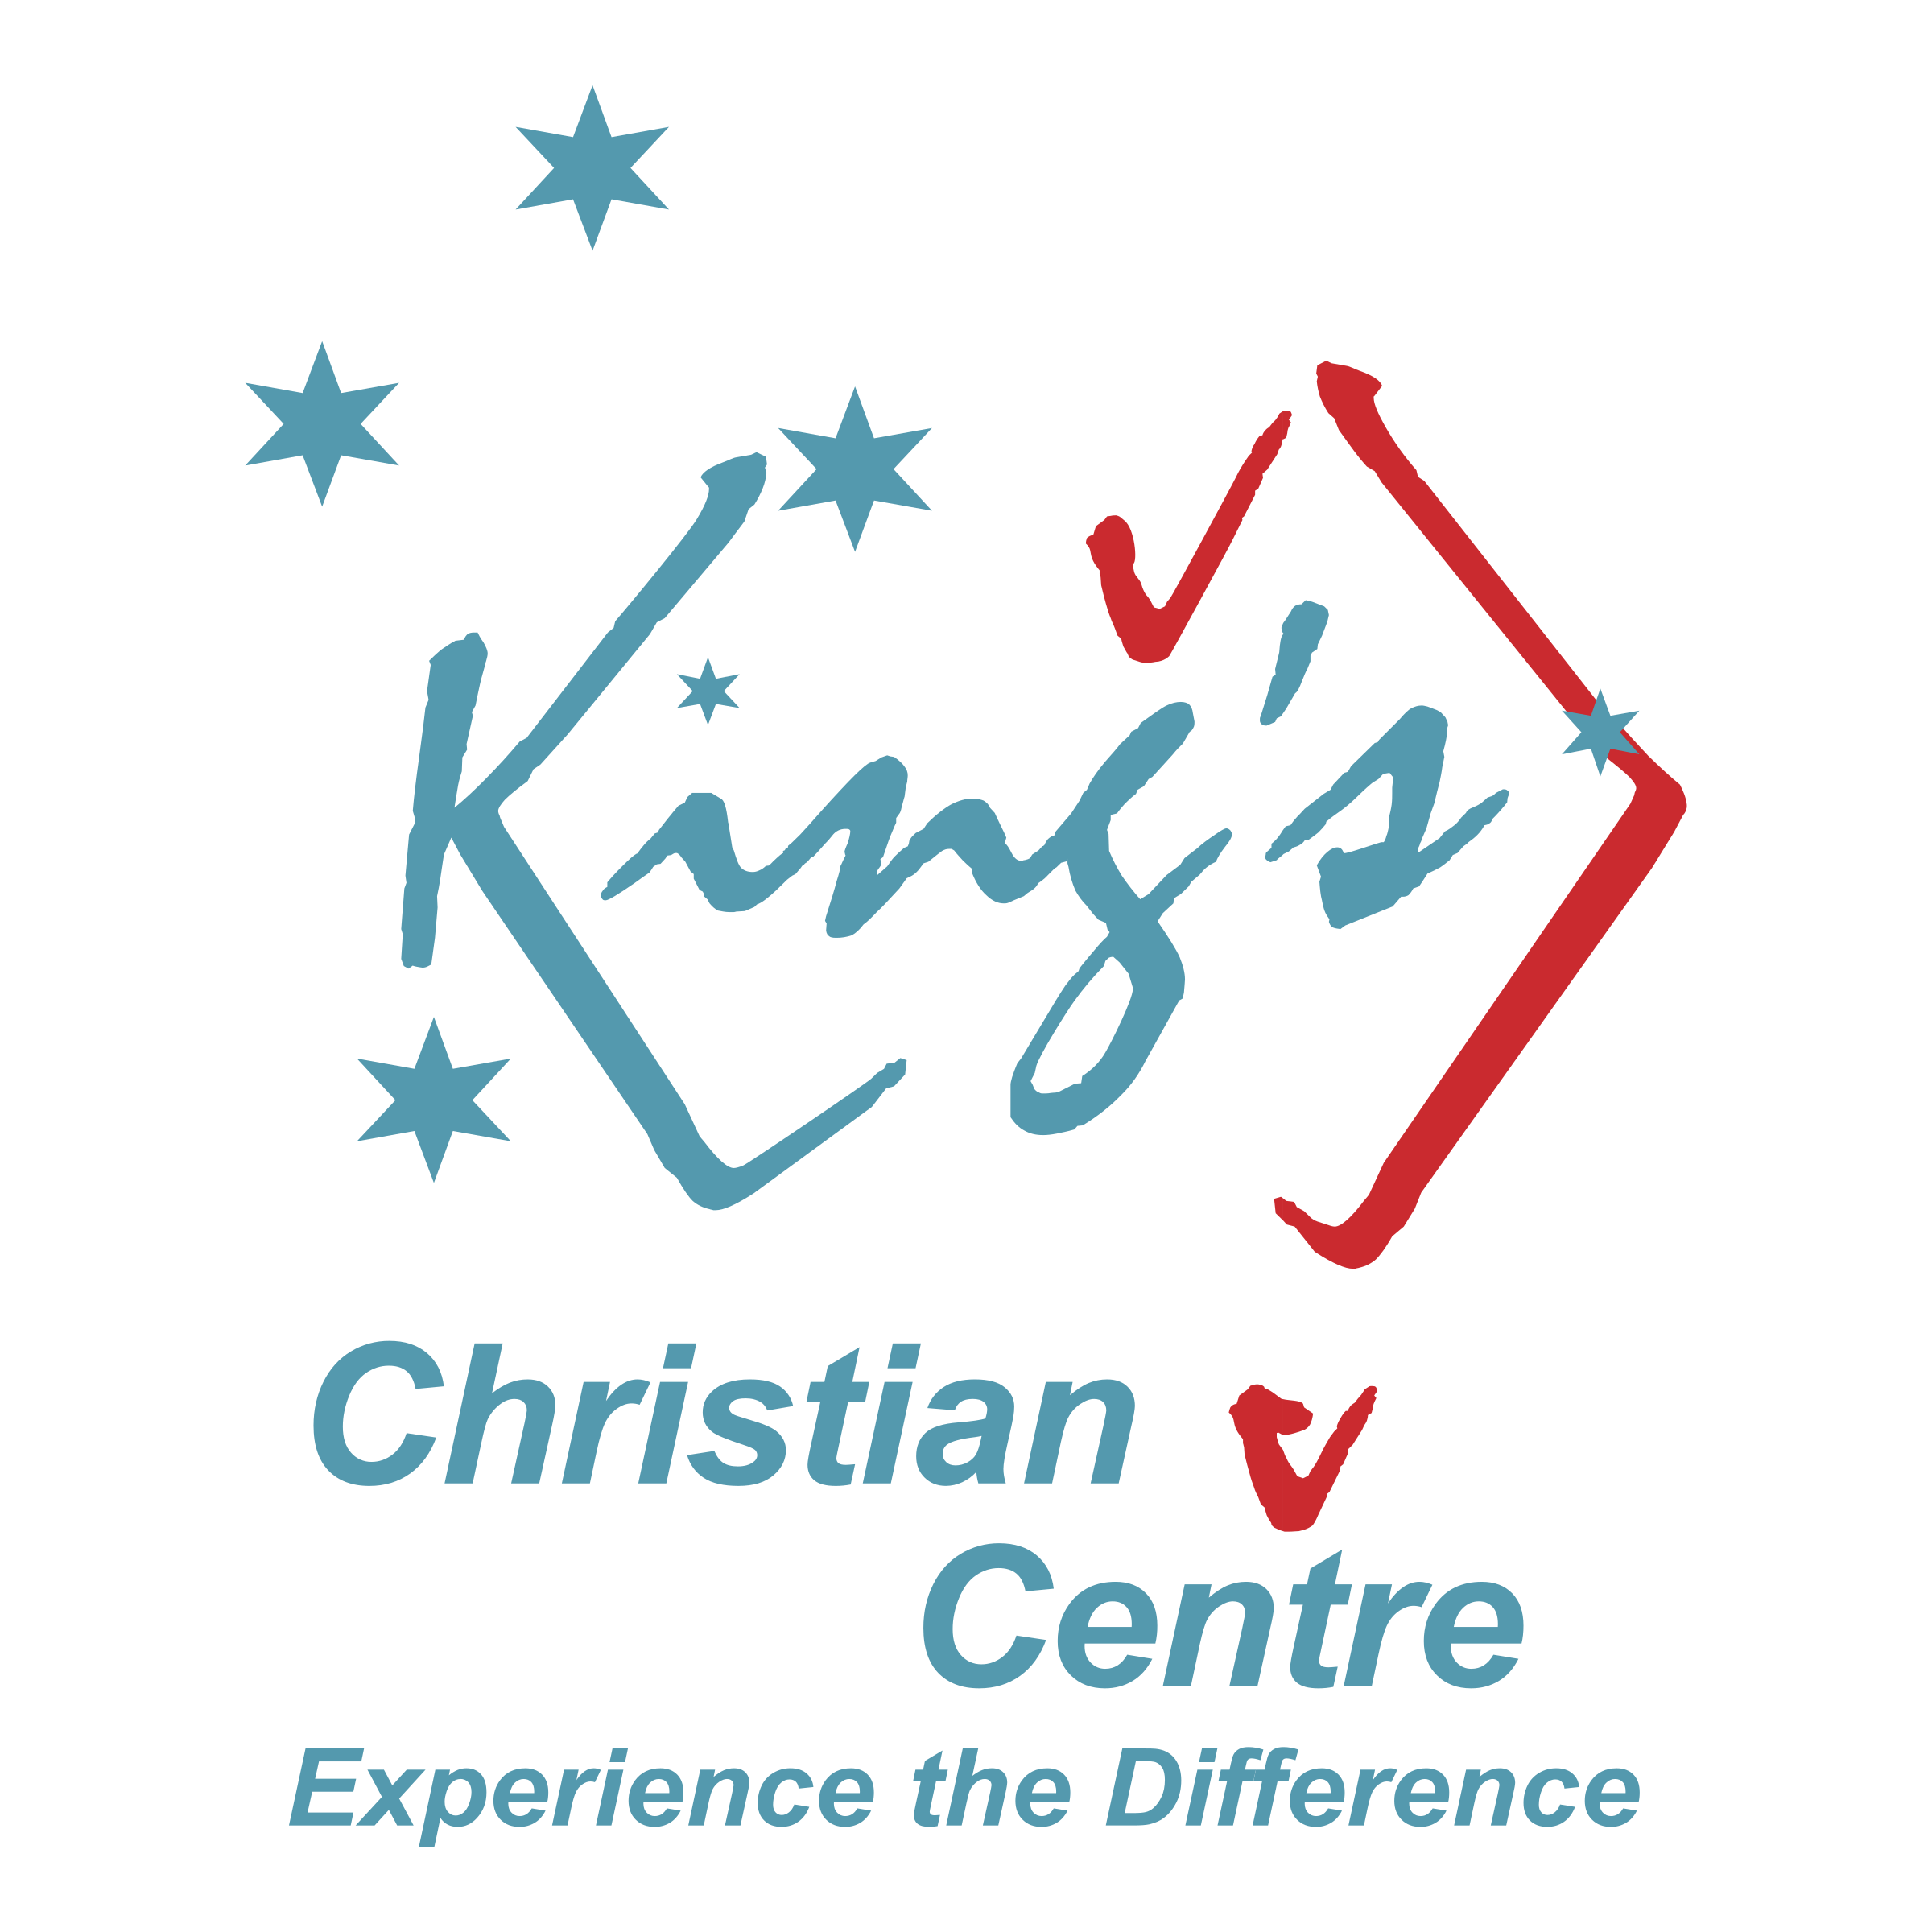 Christian vector logo. King s centre png